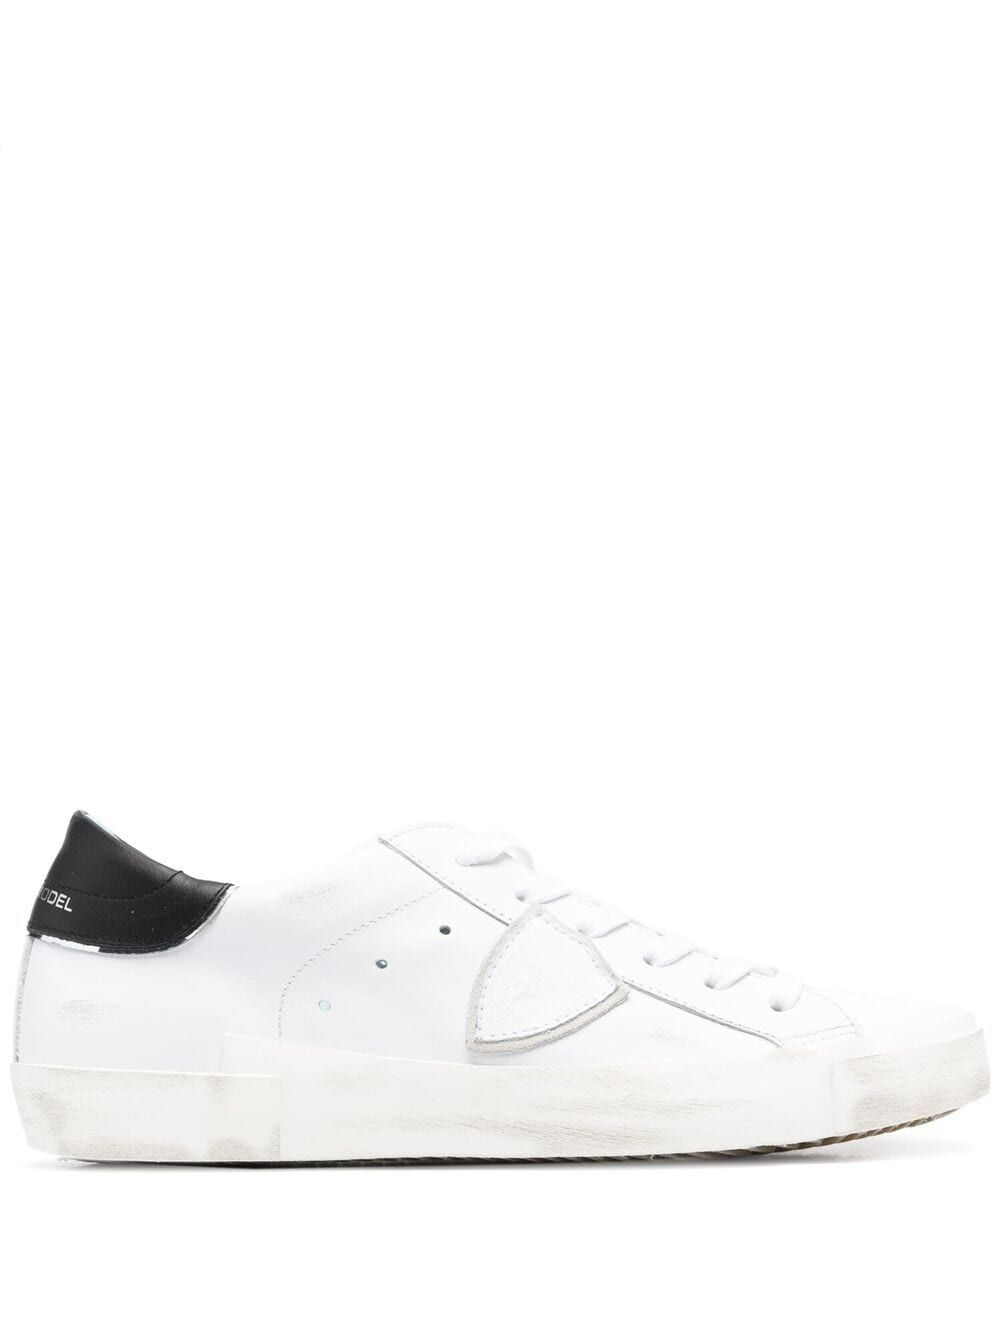 Philippe Model Leathers PHILIPPE MODEL WOMEN'S PRLDV022 WHITE LEATHER SNEAKERS